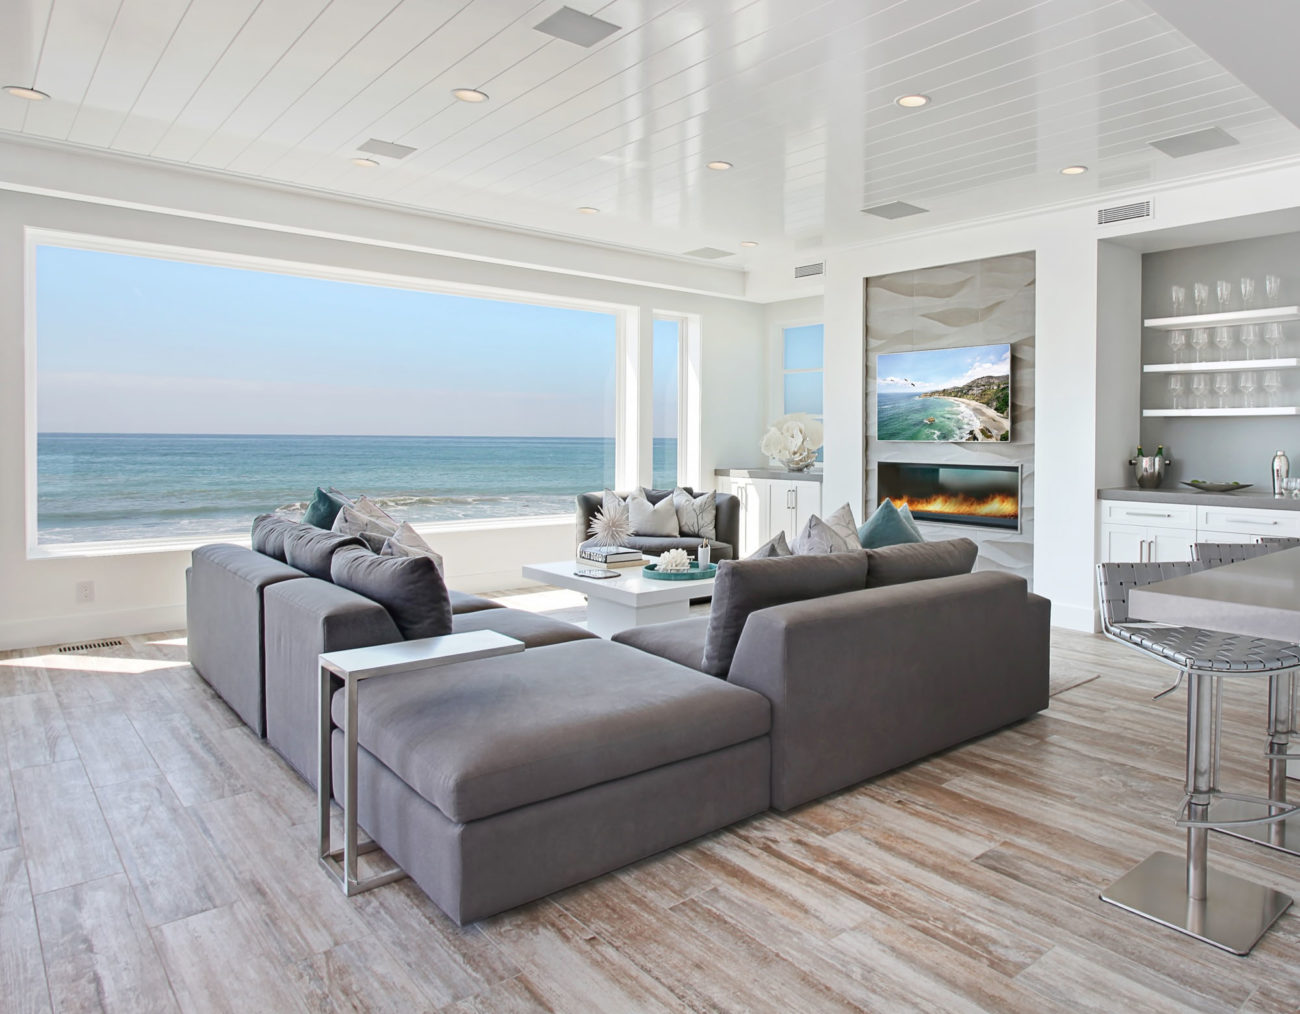 This coastal contemporary Beach retreat was designed with an open floor plan, modern finishings and west coast casual comforts. With 180 degree views of the pacific we chose to keep the ocean as the art and focus on the architectural details. This is evident in the staircase where the drywall and tiled stairs meet with […]